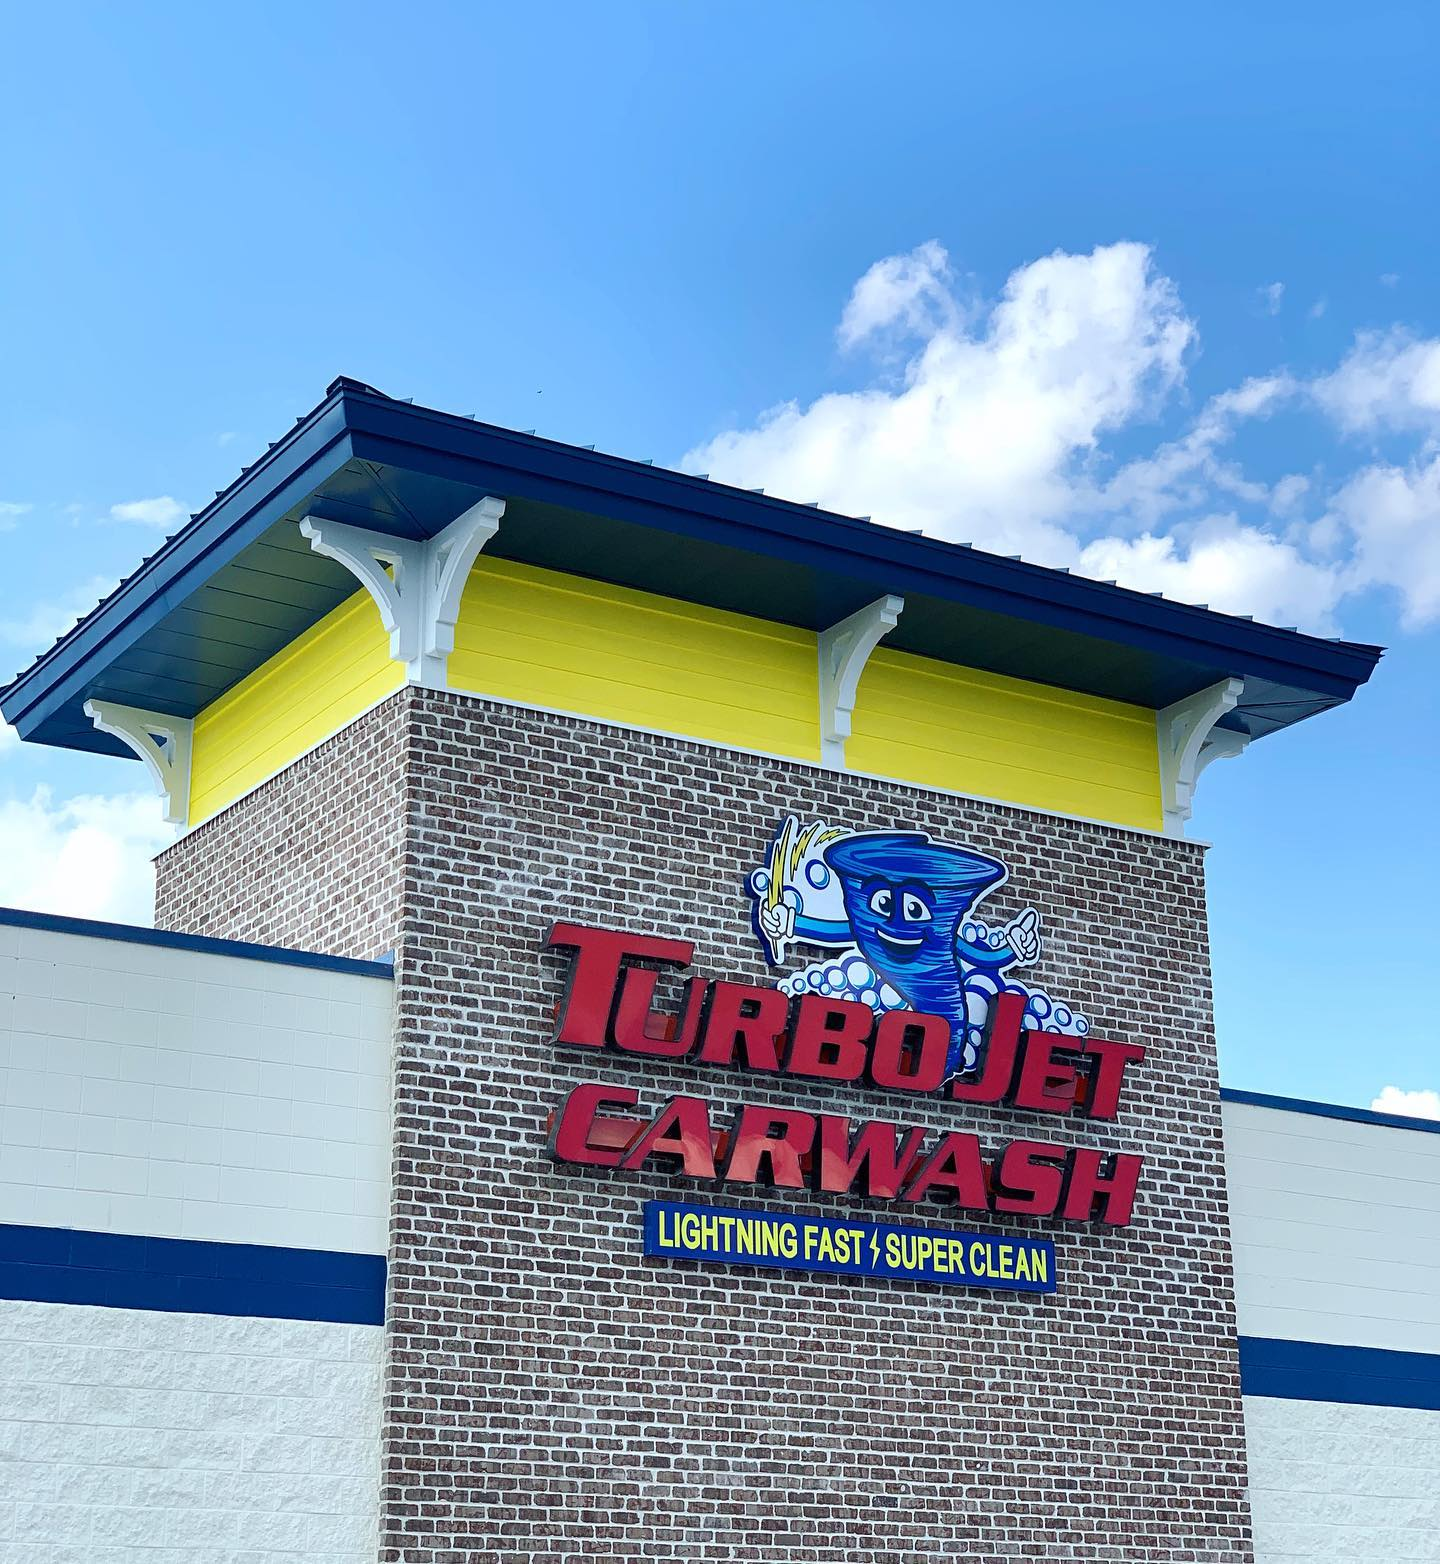 turbo jetNorth myrtle beach - 4404 HIGHWAY 17 SOUTHNORTH MYRTLE BEACH, 29582CLICK FOR DIRECTIONS